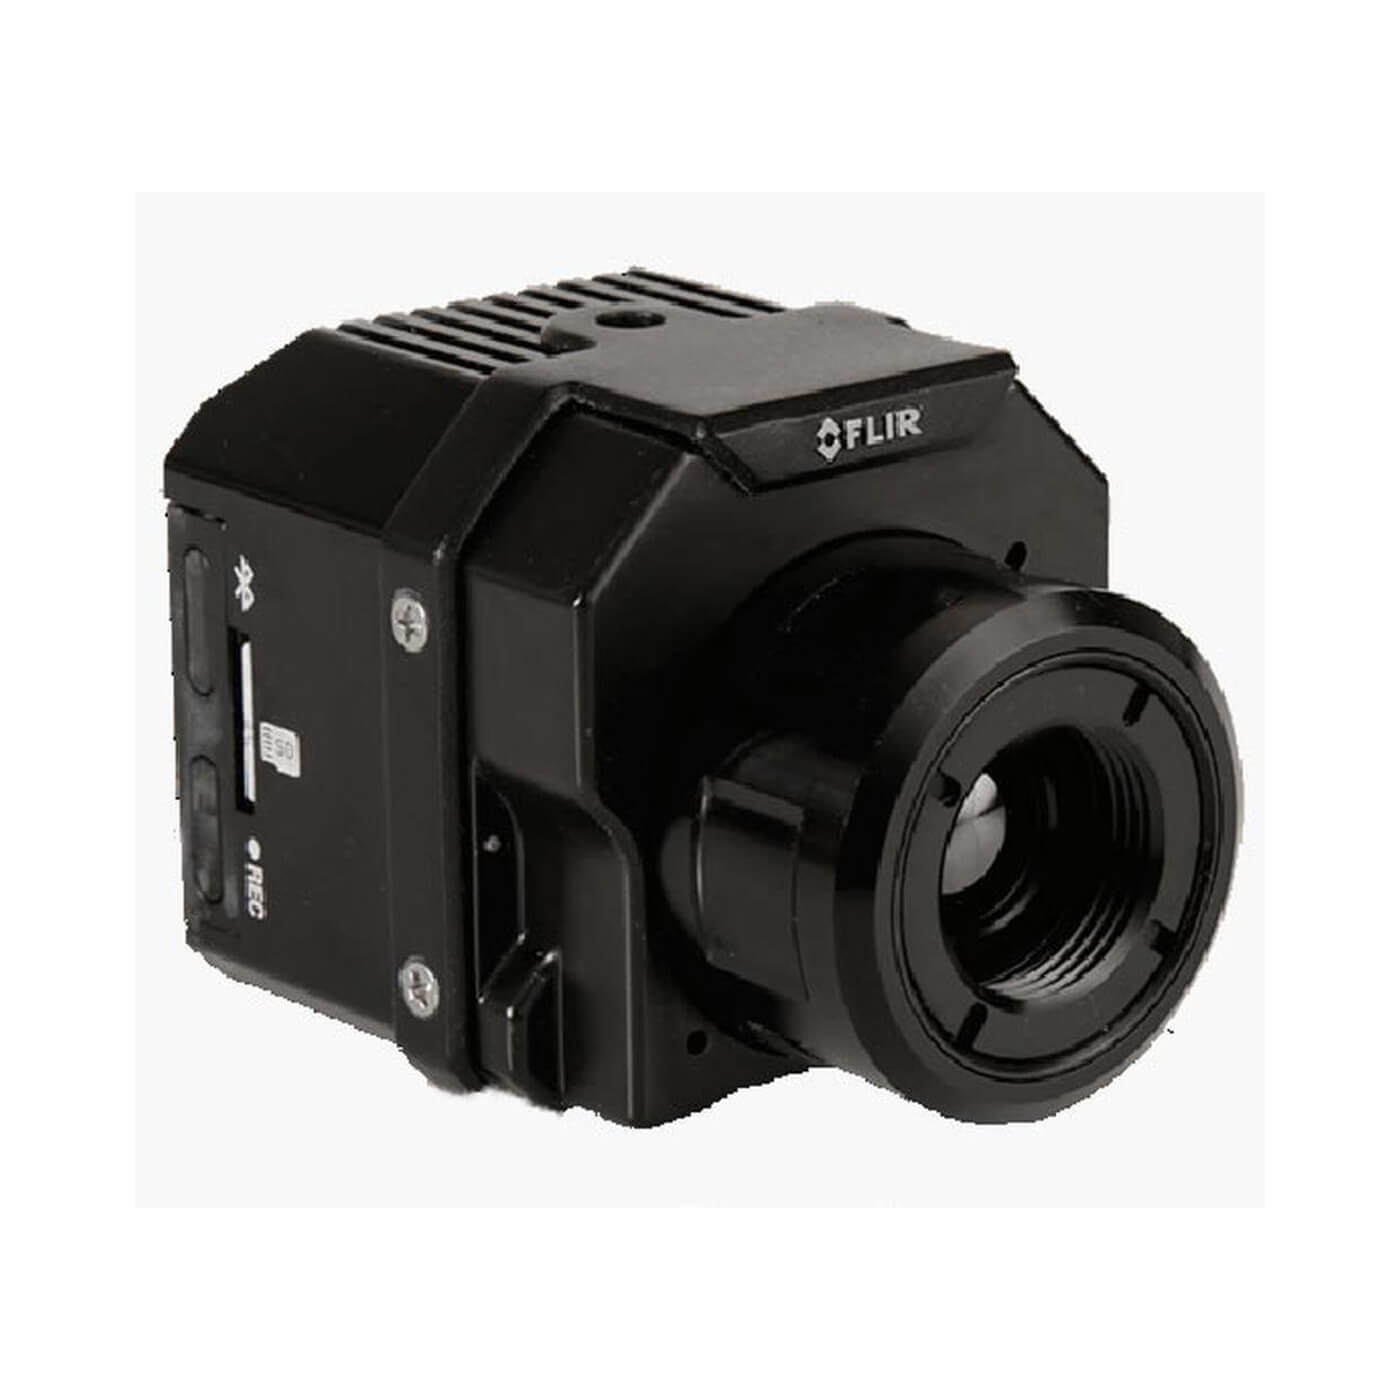 Flir 436-0017-00 Vue Pro 640 Thermal Imager for drone